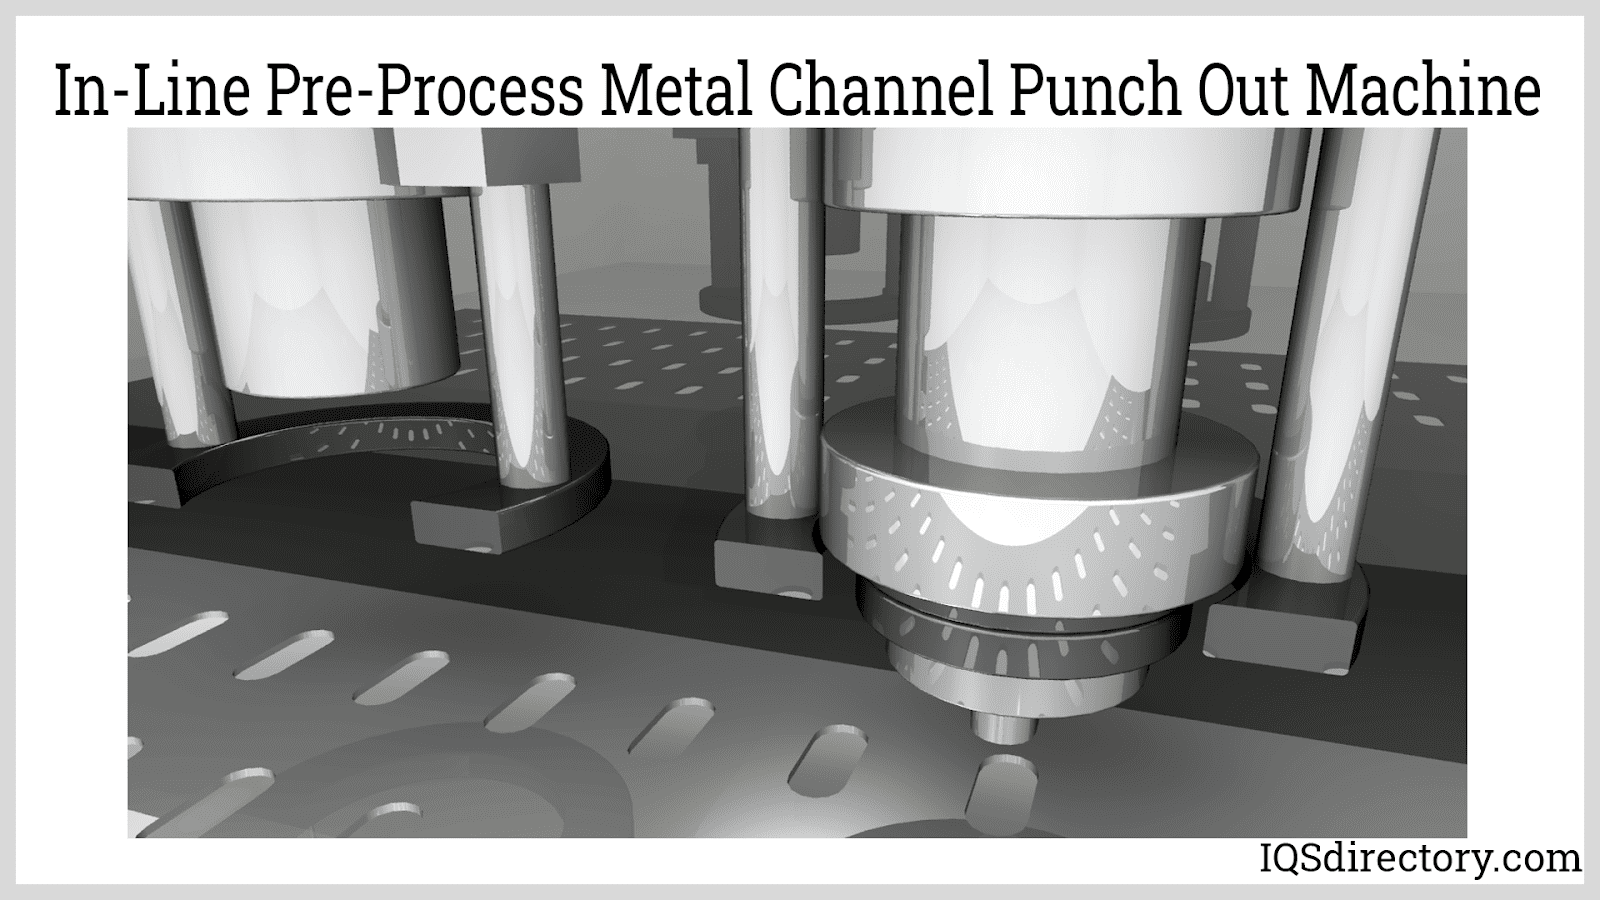 In-Line Pre-Process Metal Channel Punch Out Machine